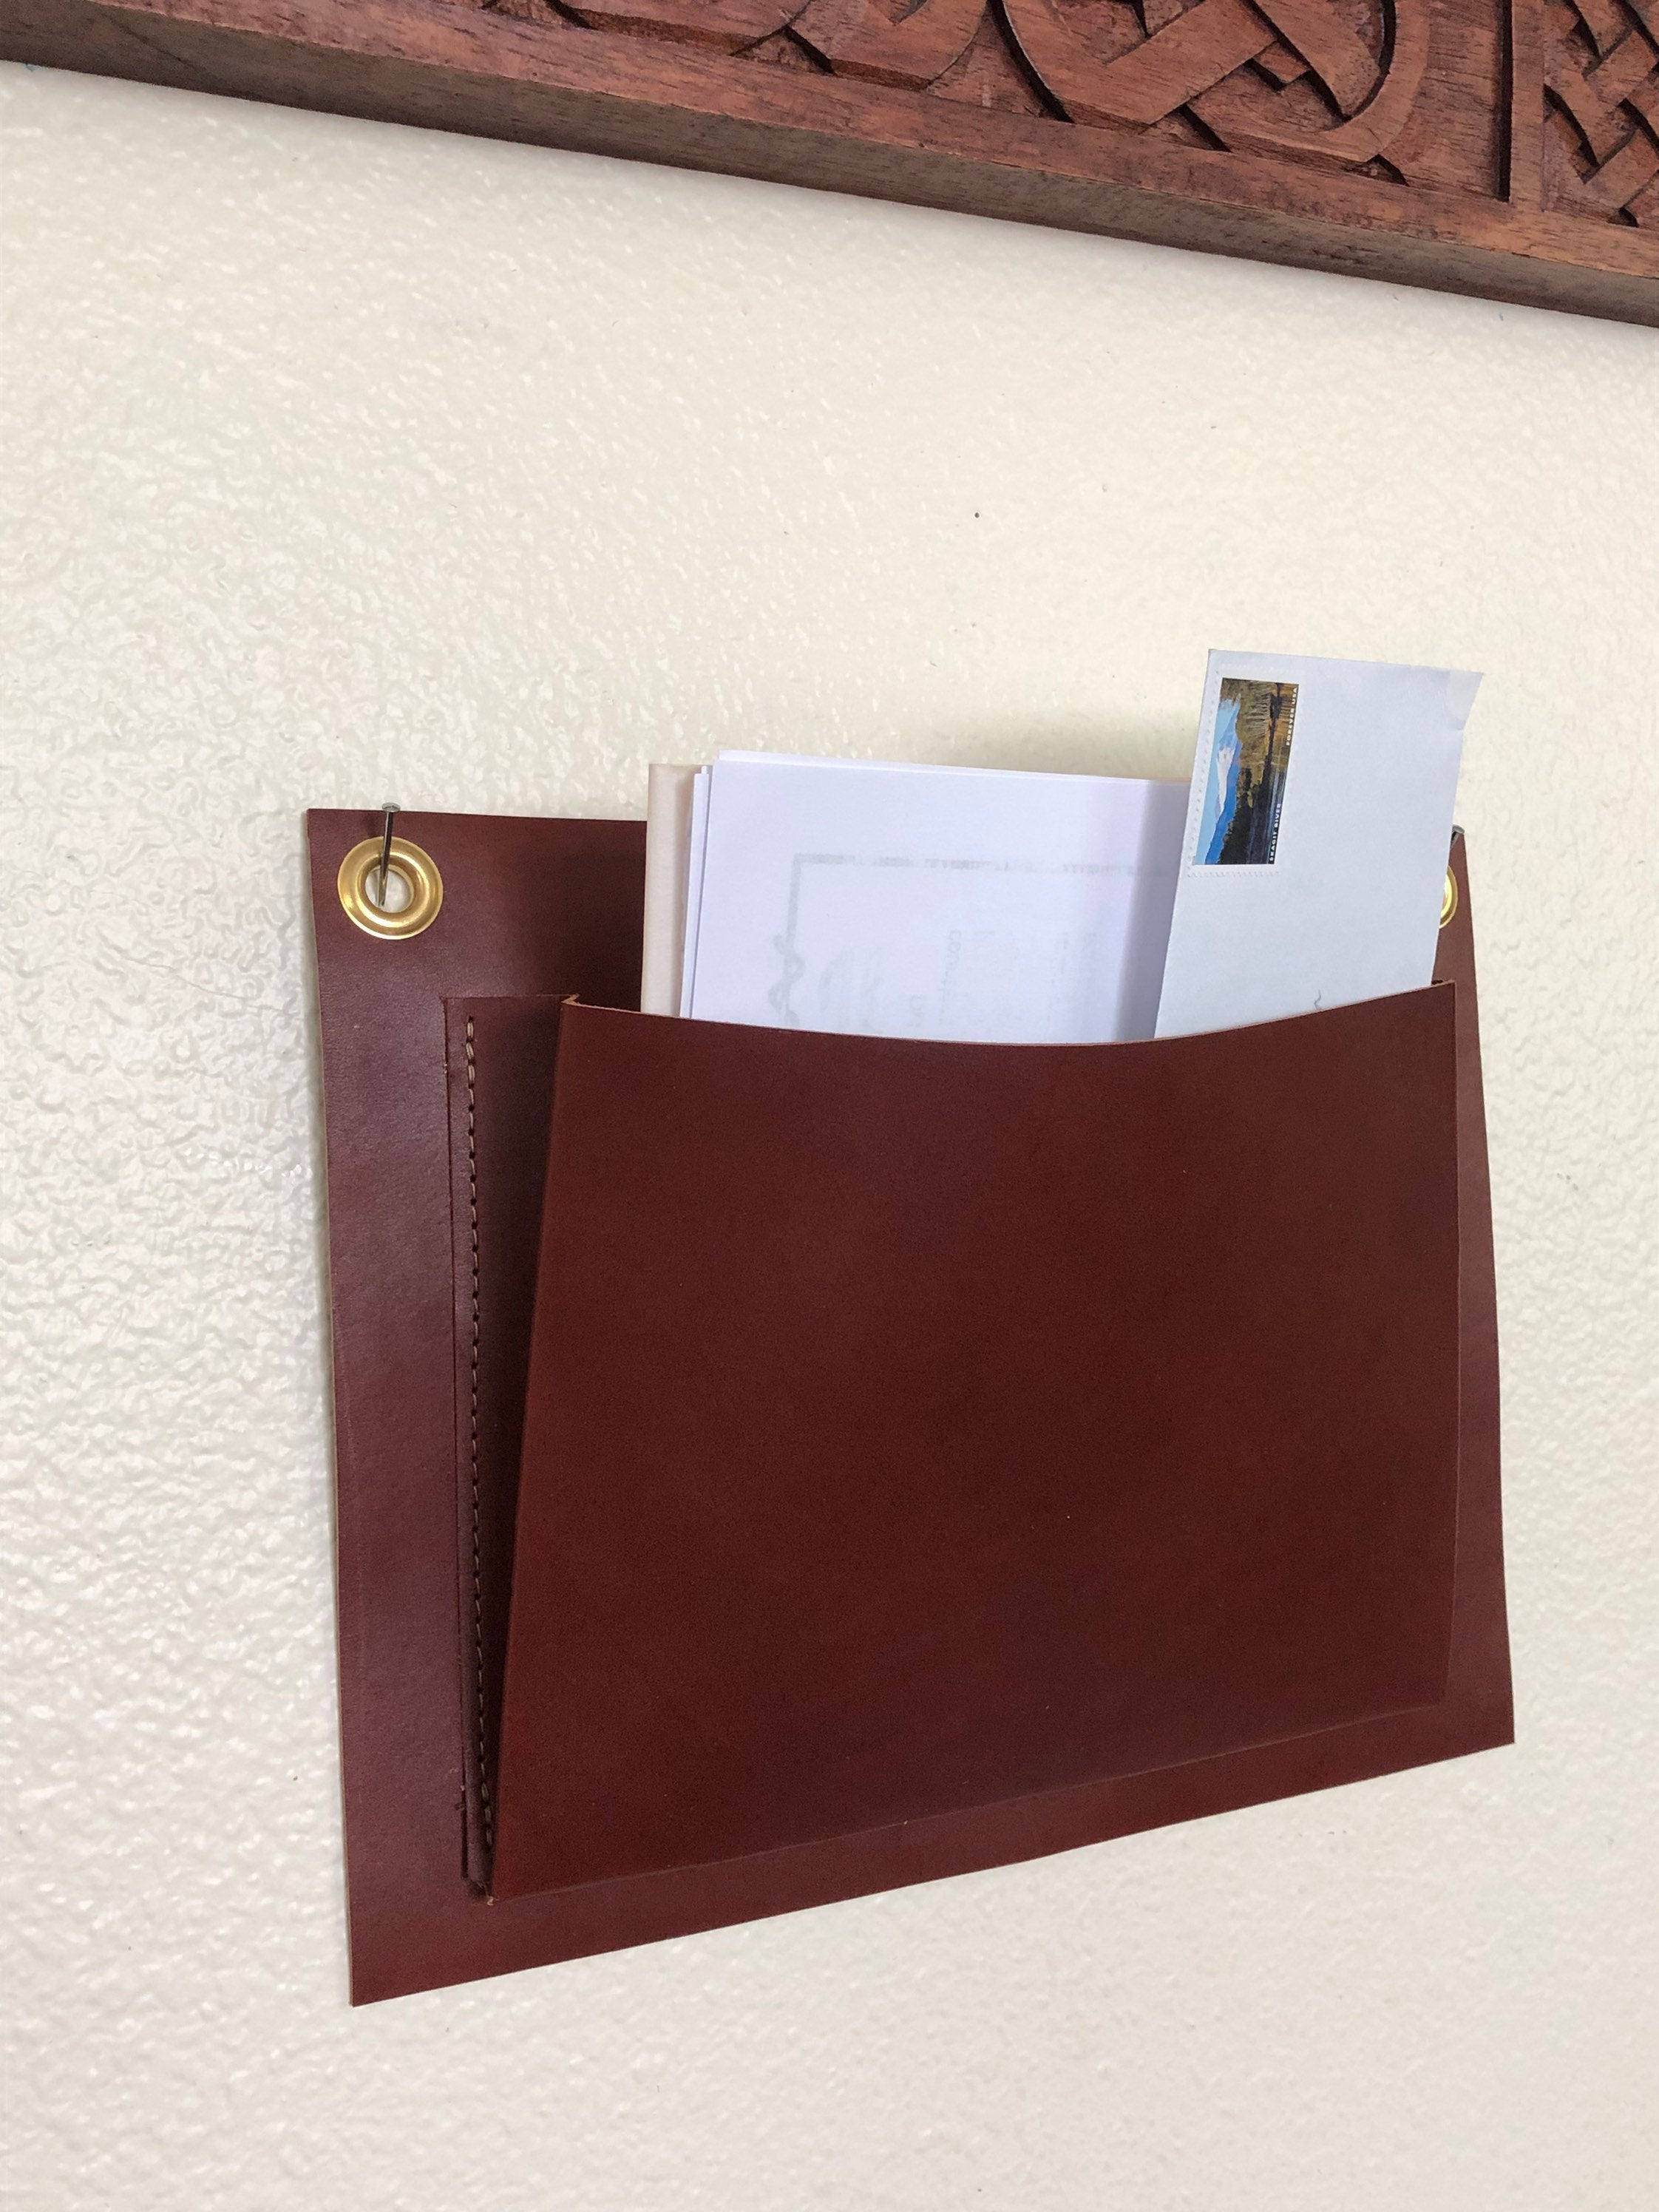 Brown leather wall organizer holds mail and hangs under mirror